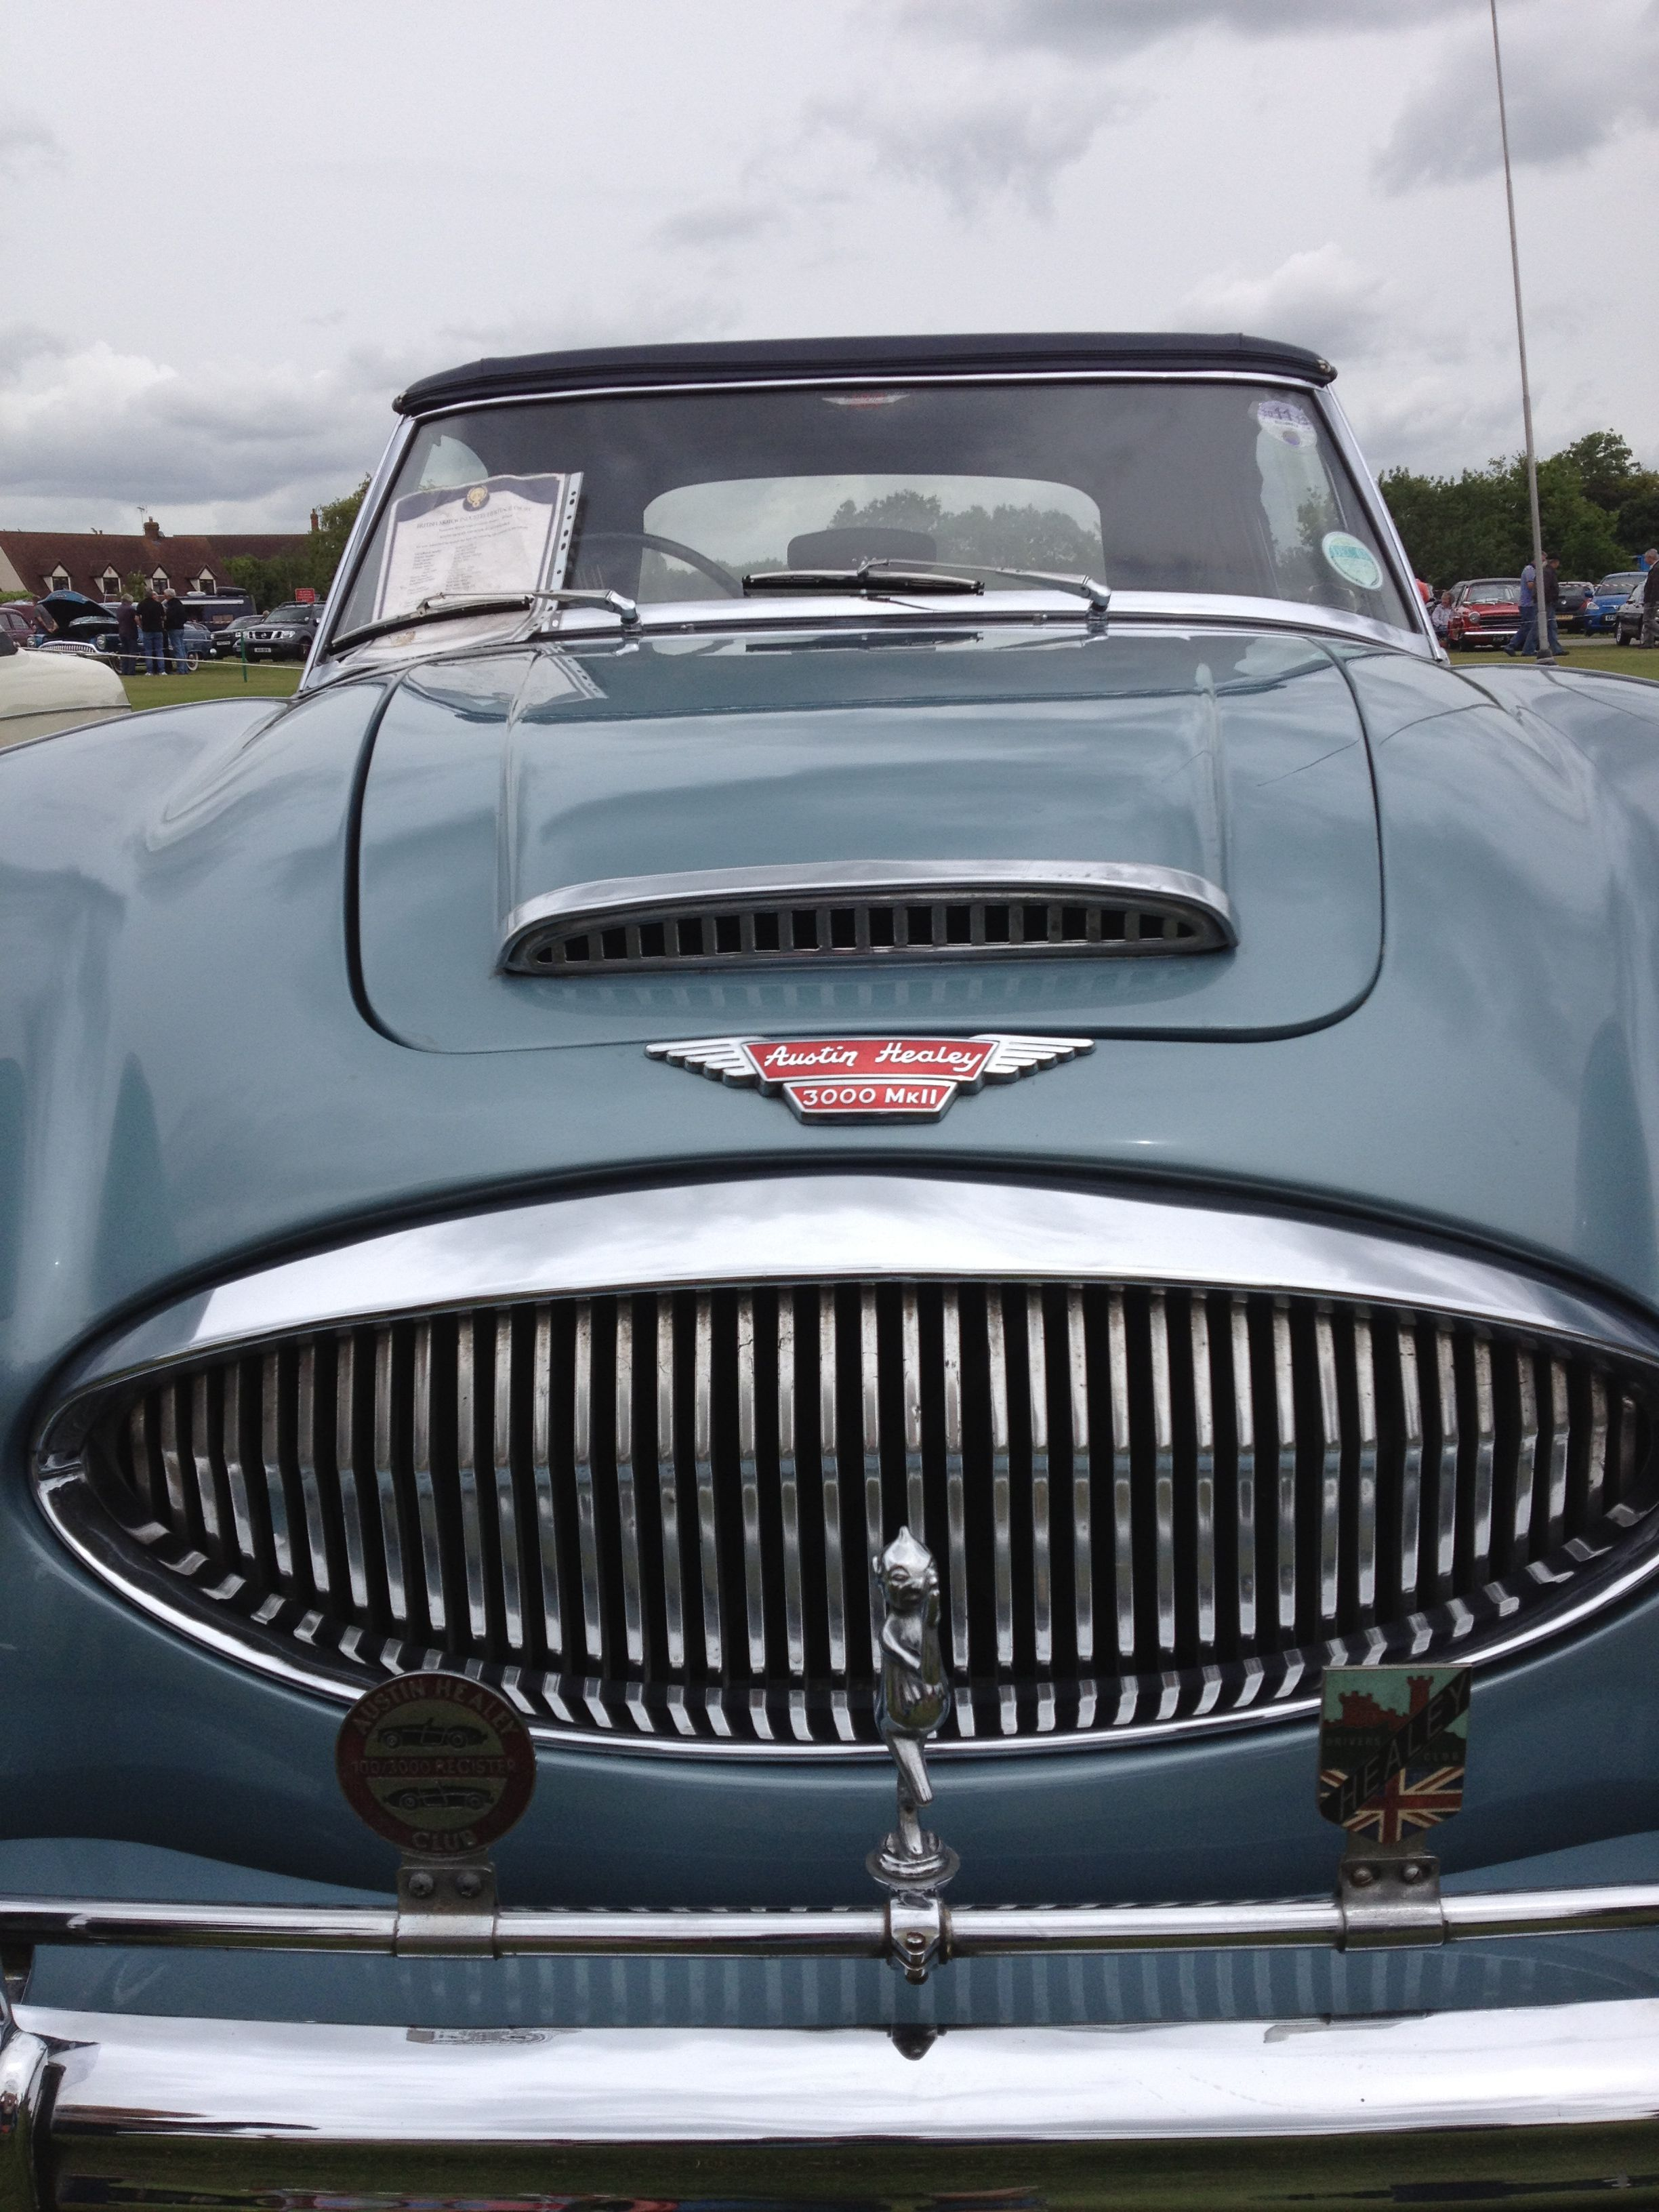 More of the Austin Healey